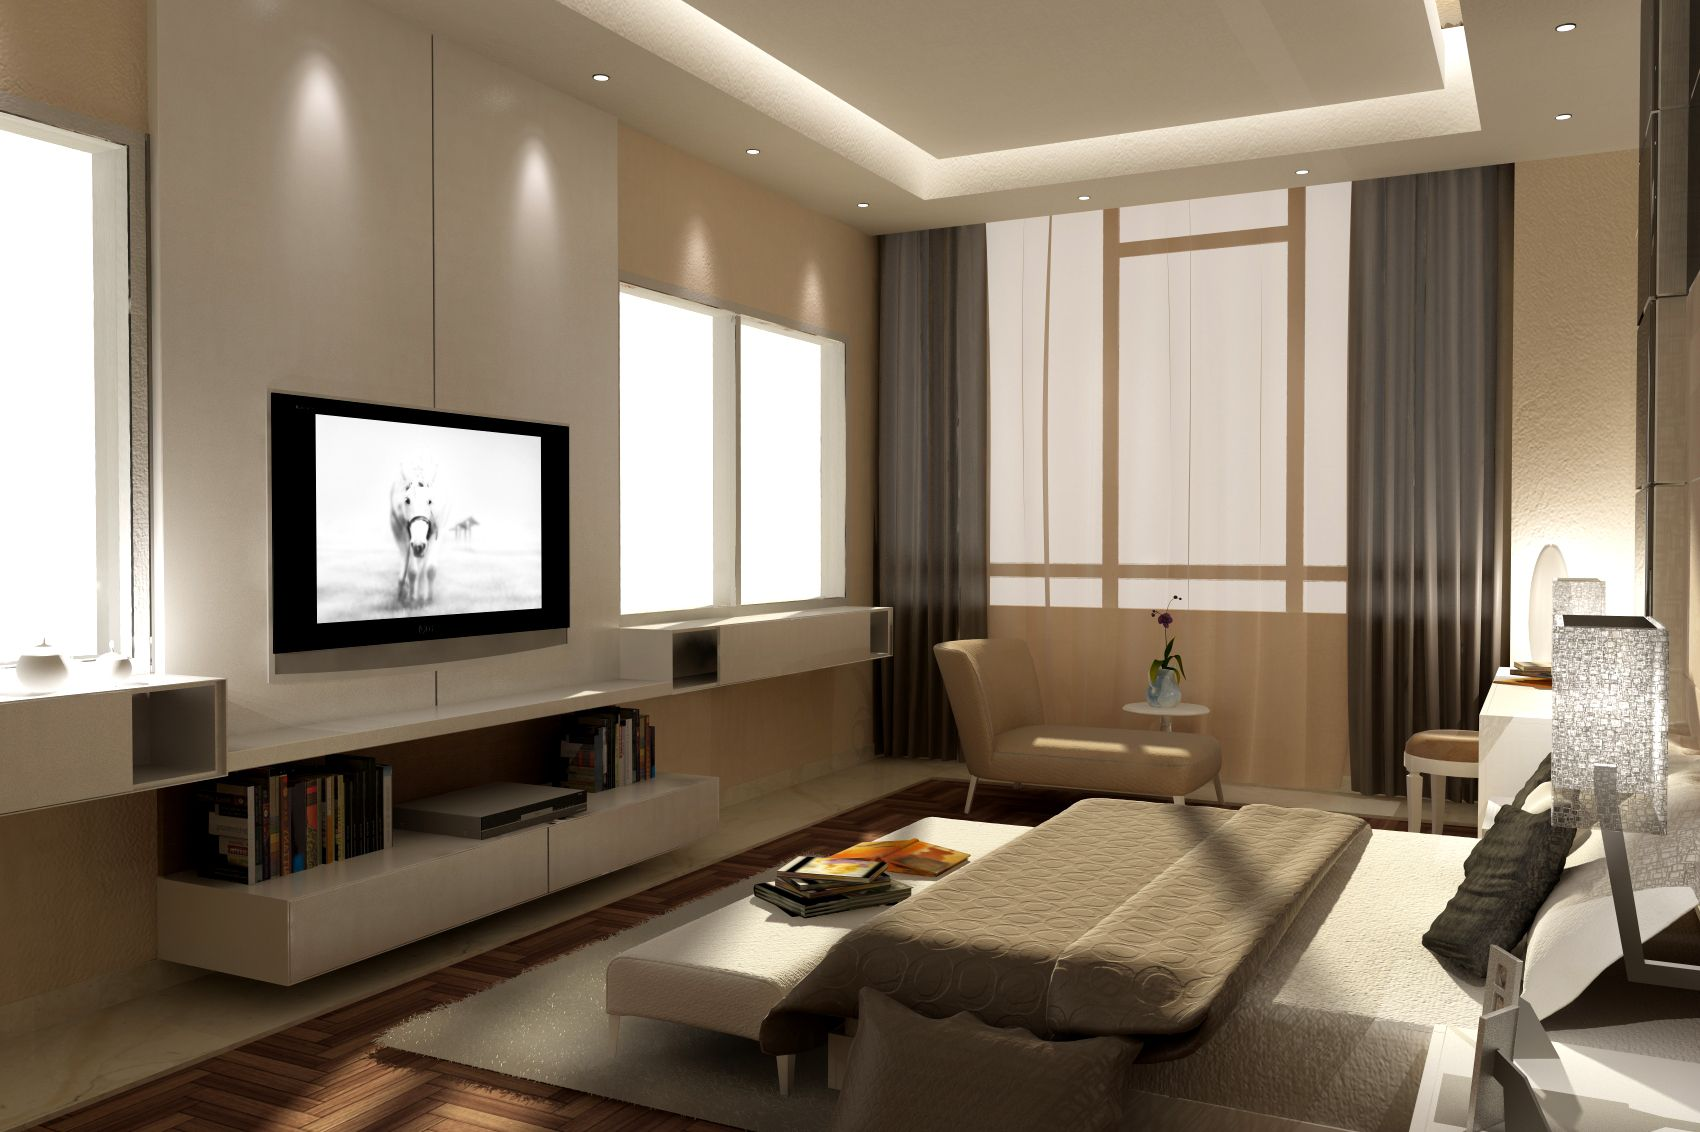 Bedroom modern bedroom interior design 3d max 3d for Bedroom interior design